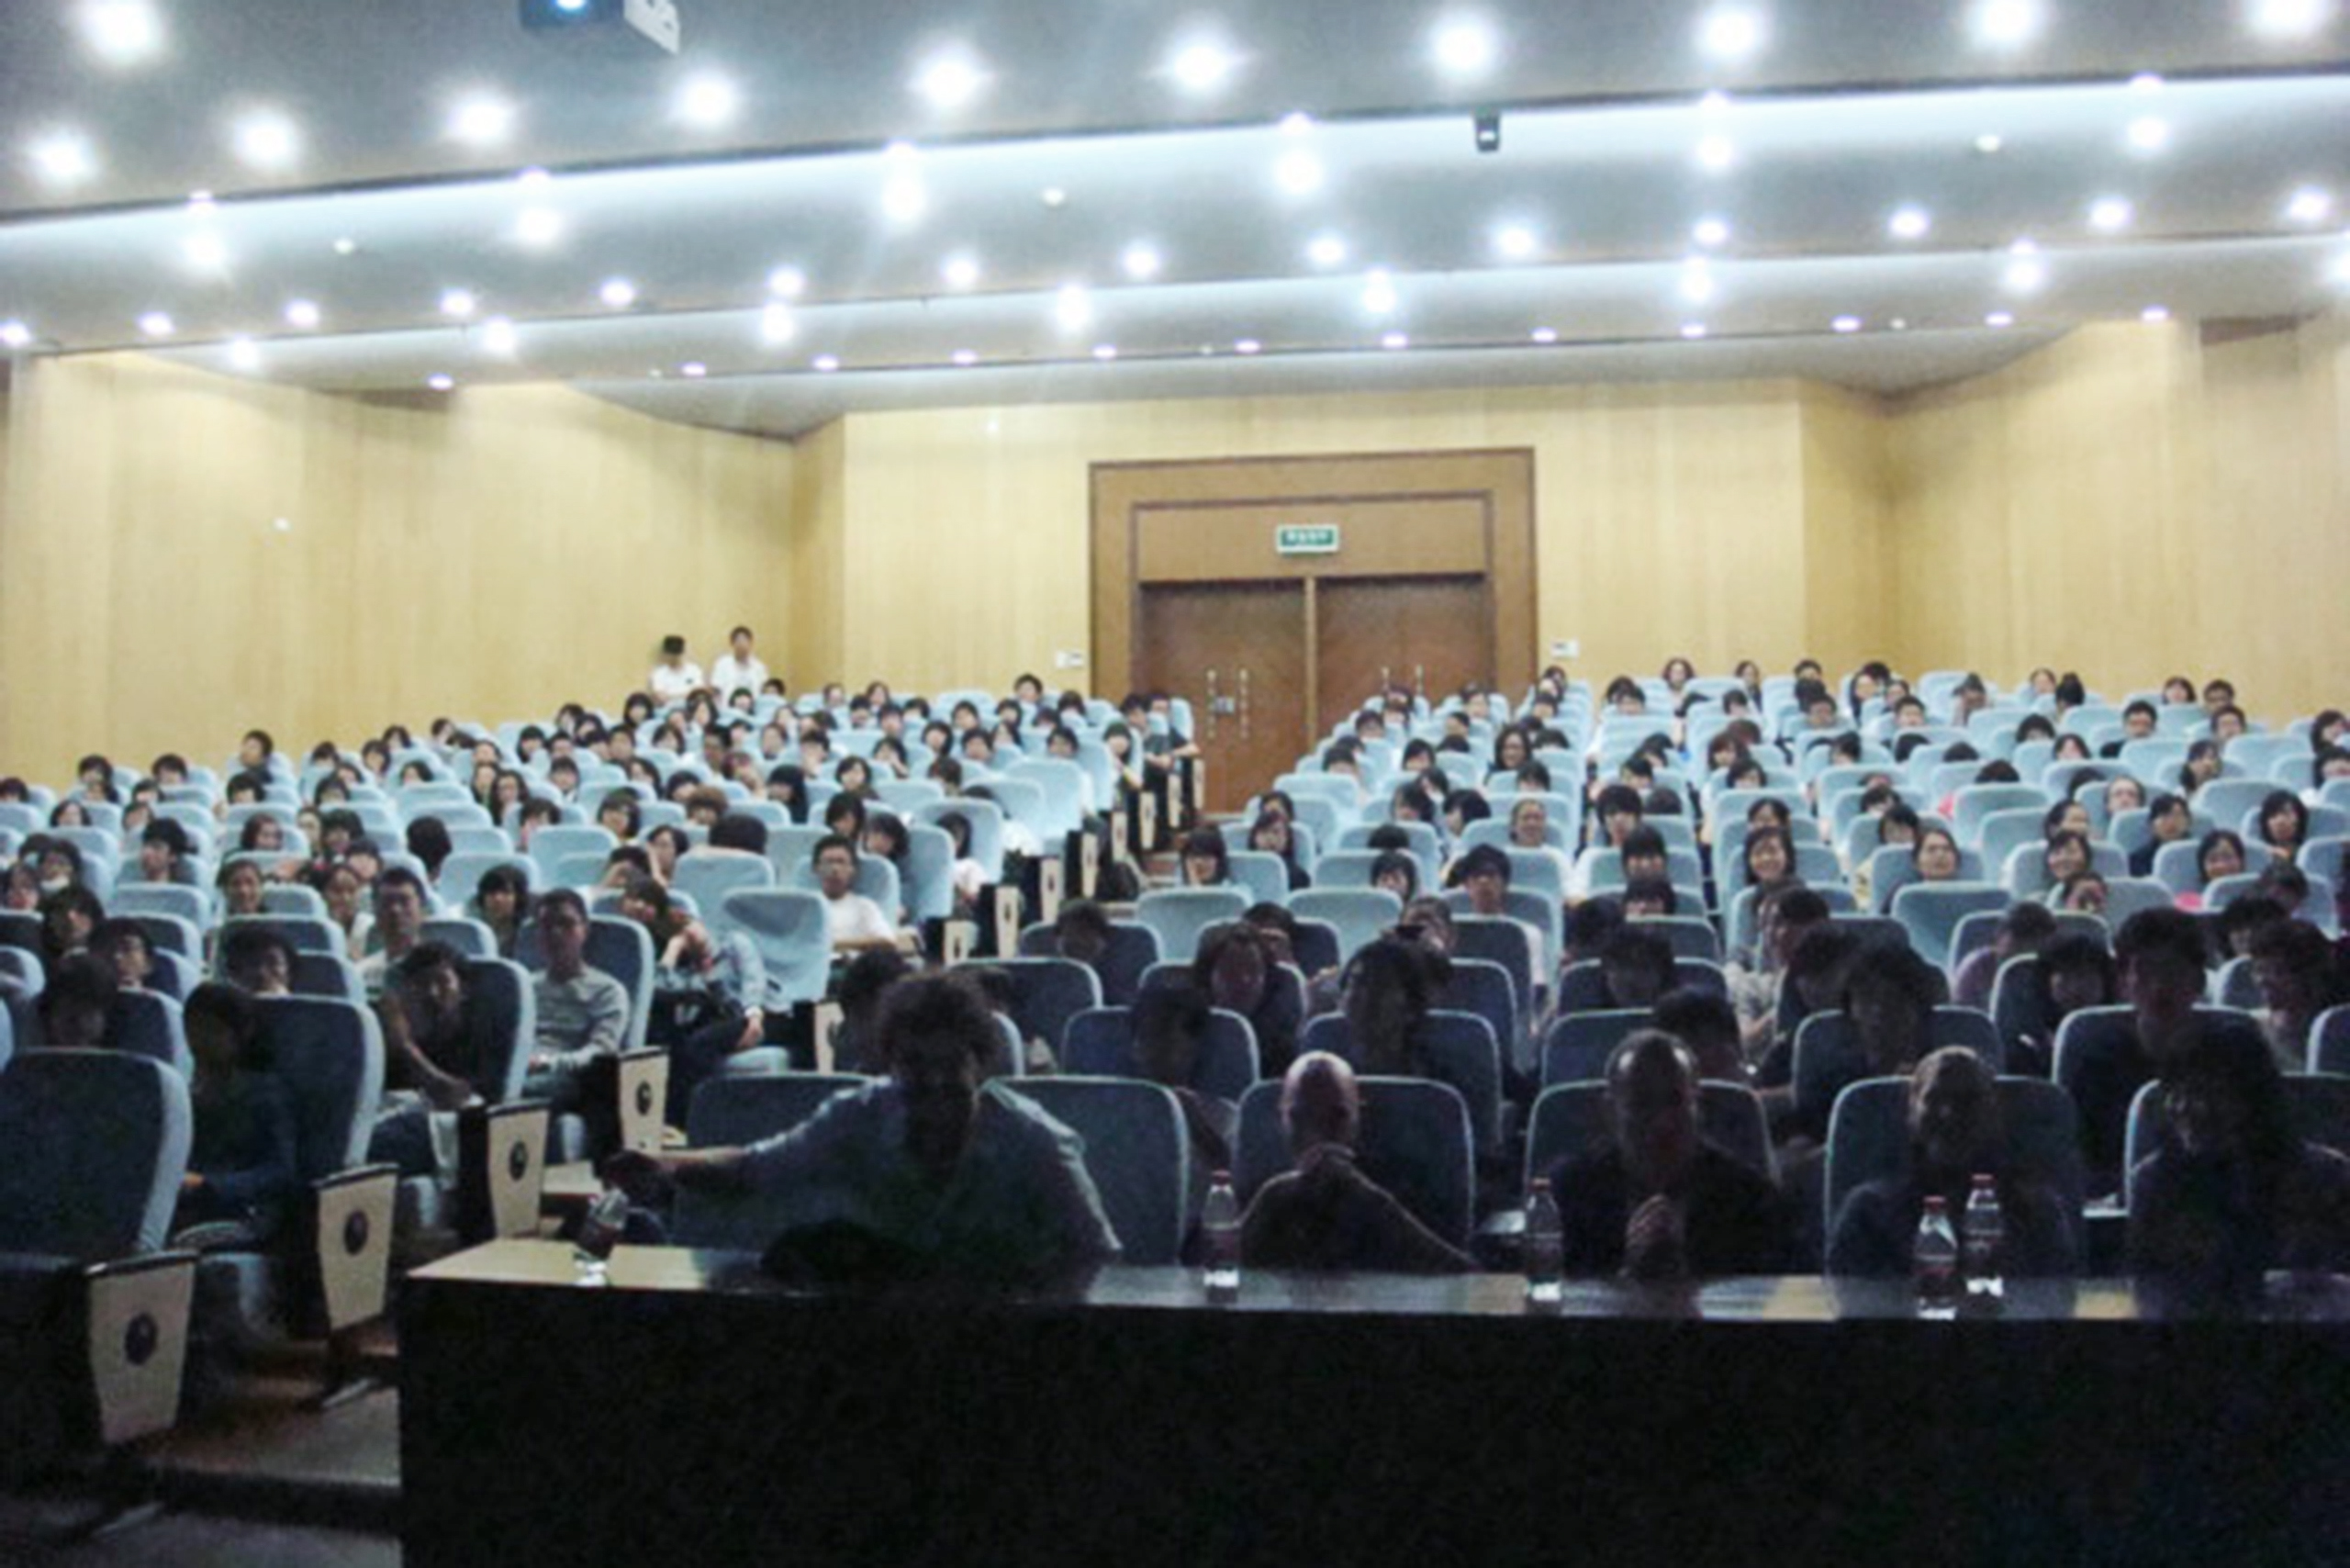 Lecture at the Art Design College of Zhejiang Gongshang University